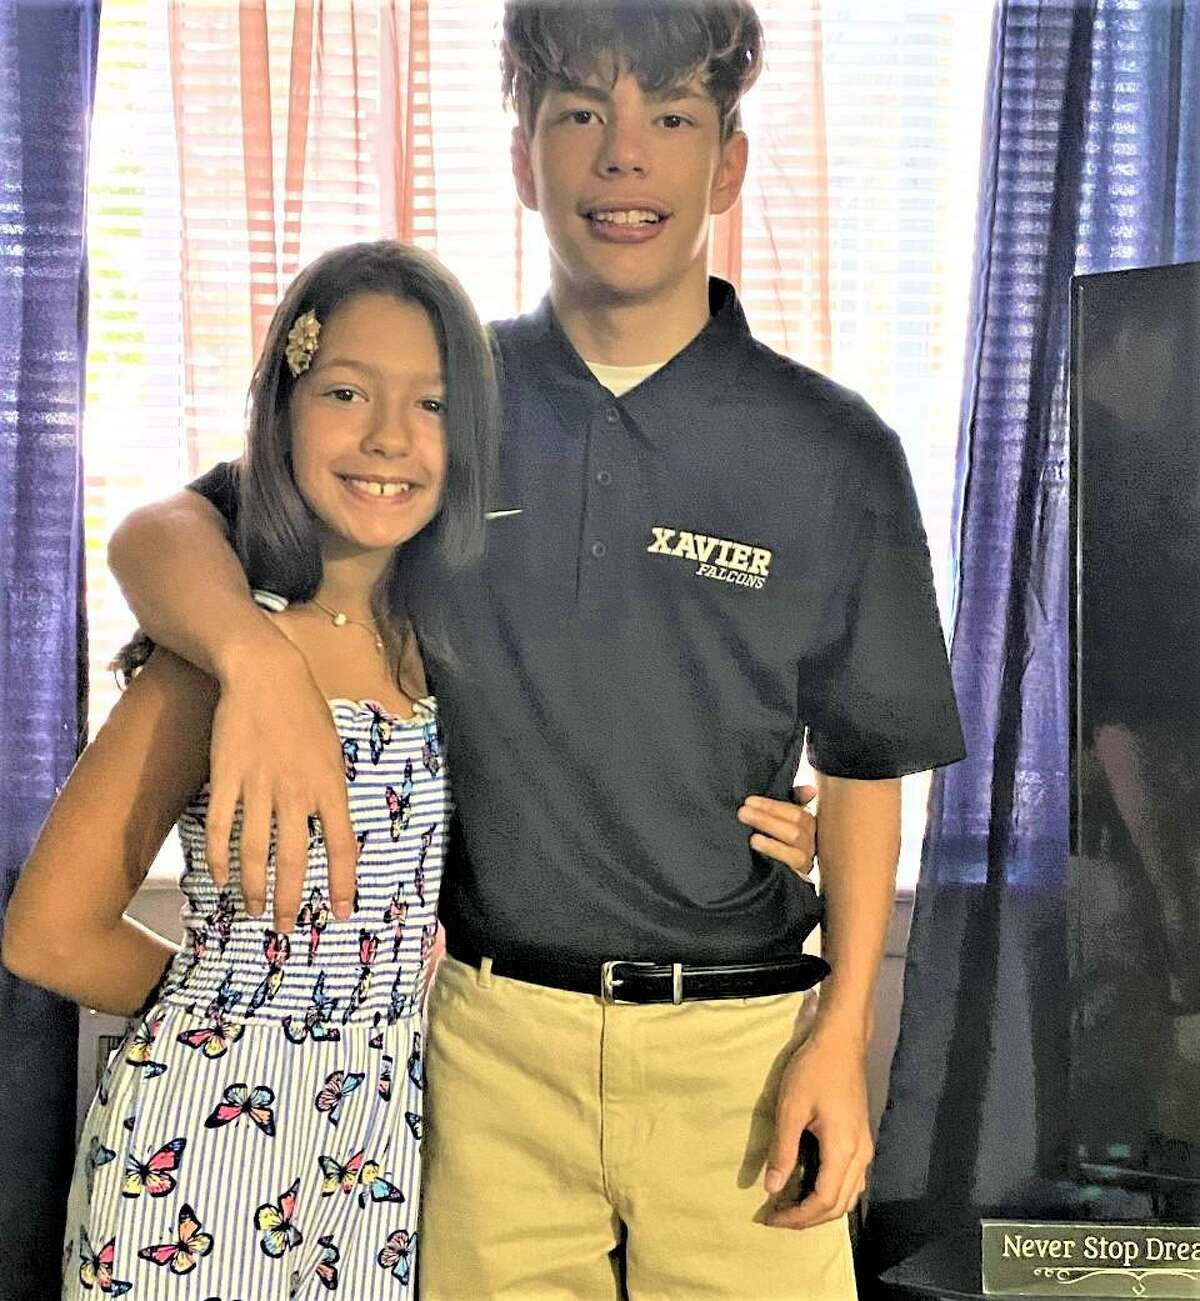 Xavier High School ninth-grader Lucas Rivera, 15, right, of Middletown, poses for a photograph before school Thursday with little sister Annabella Blanco. Lucas took first place recently in the Math 180 category of the 14th Annual Houghton Mifflin Harcourt Student Awards.